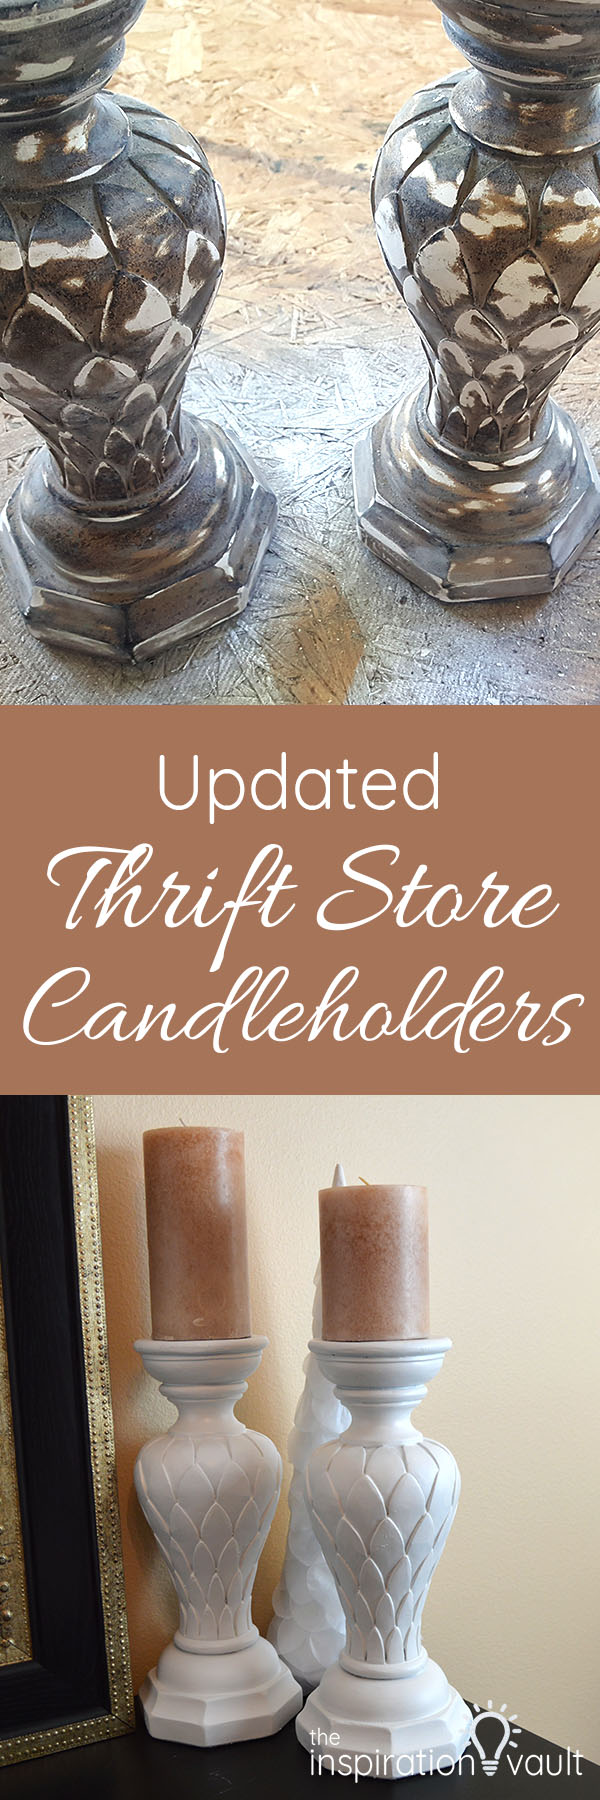 Updated Thrift Store Candleholders DIY Craft Tutorial Long